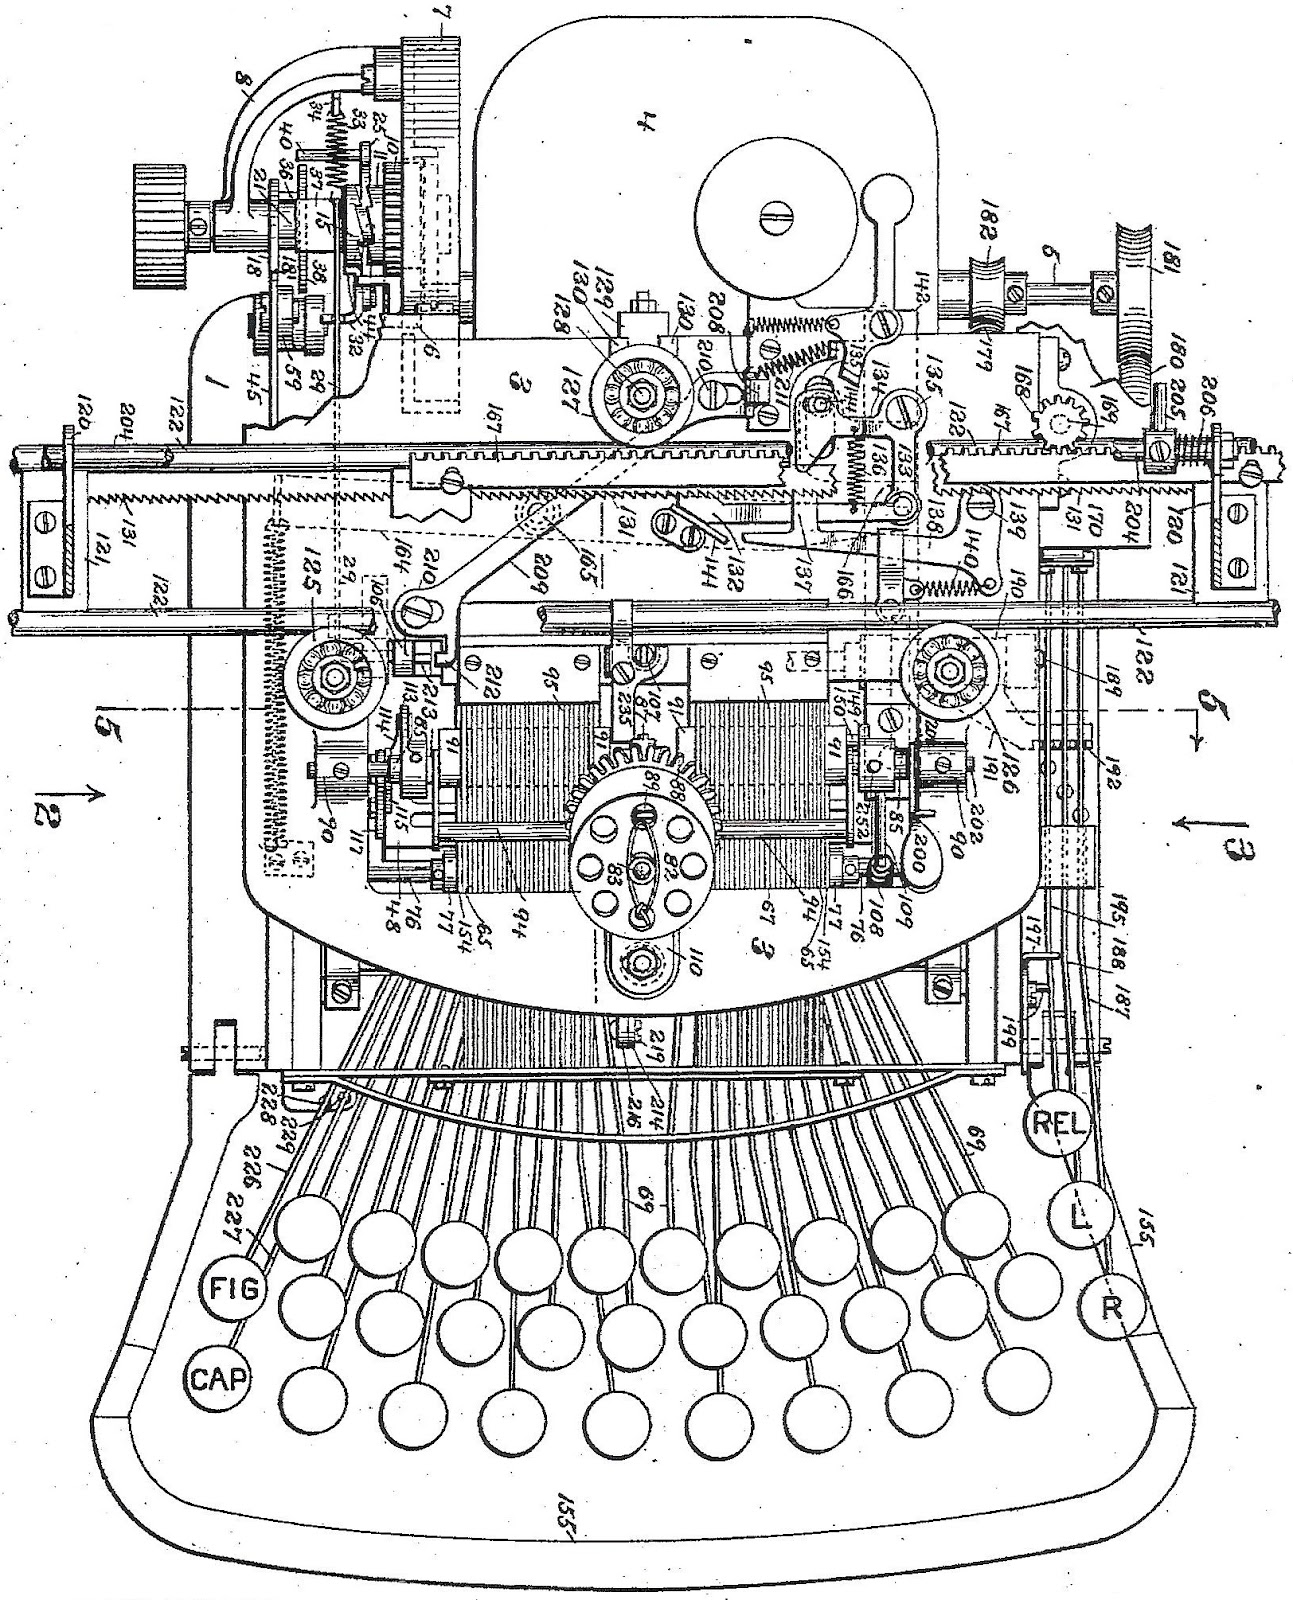 oz.Typewriter: Future Shock: How Blickensderfer Developed